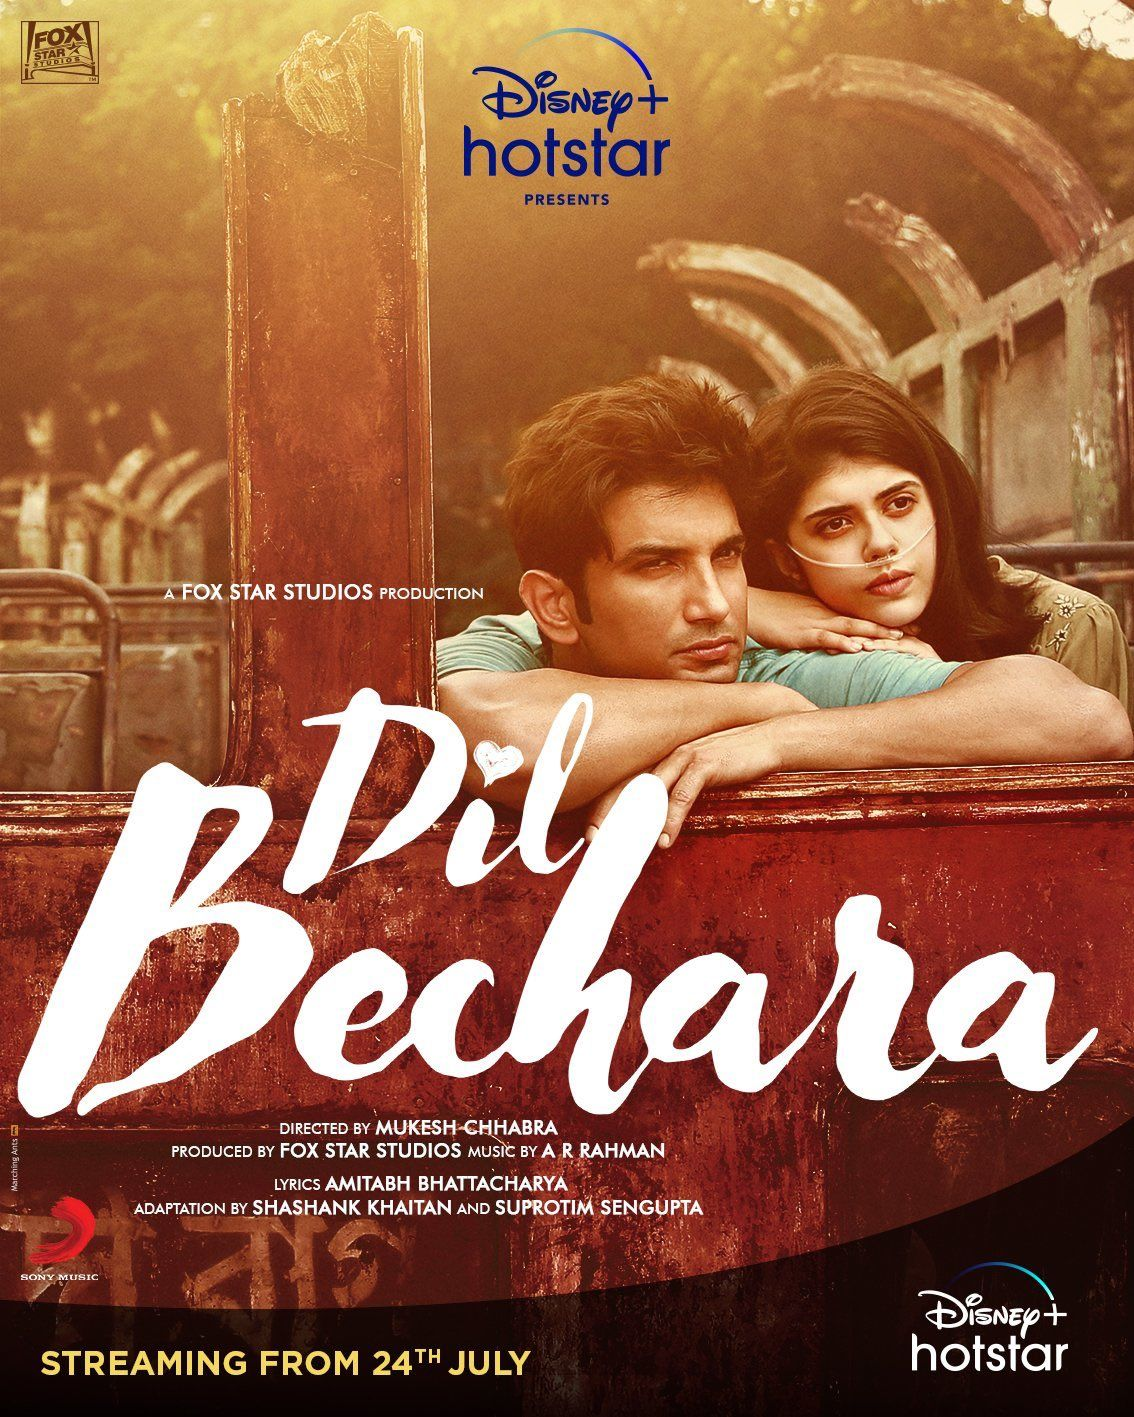 Dil Bechara 2020 Hindi Hdrip 480p 720p 1080p X264 300mb 850mb 1 7gb Download Movie Link Bd Tam Film Hindi Movies Aksiyon Filmleri